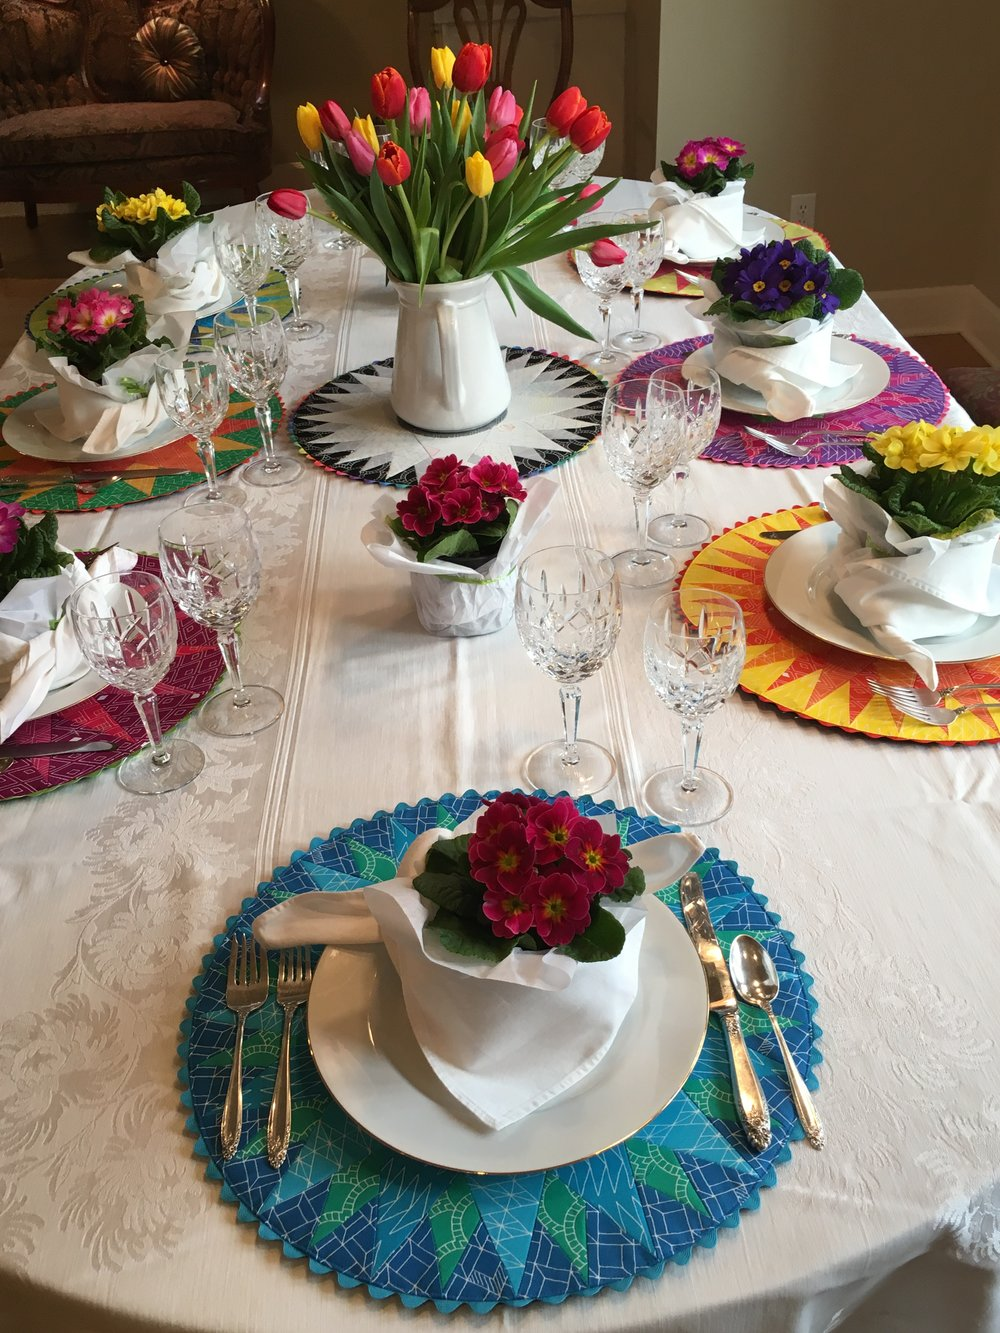 Add dishes - and you are ready for a colorful dinner party!